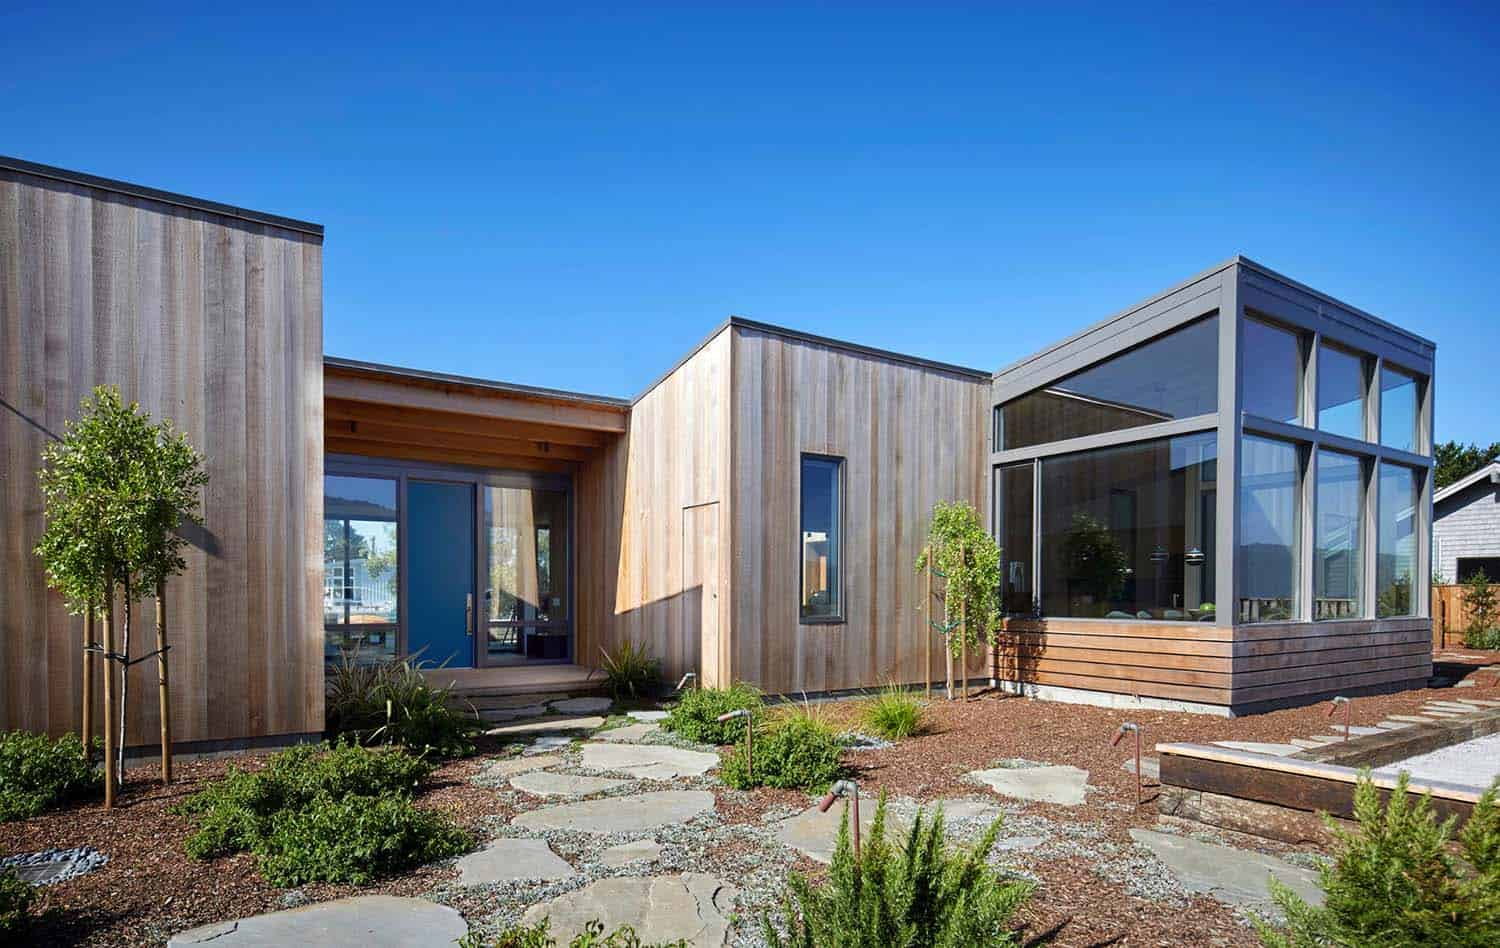 stinson-beach-lagoon-residence-turnbull-griffin-haesloop-03-1-kindesign